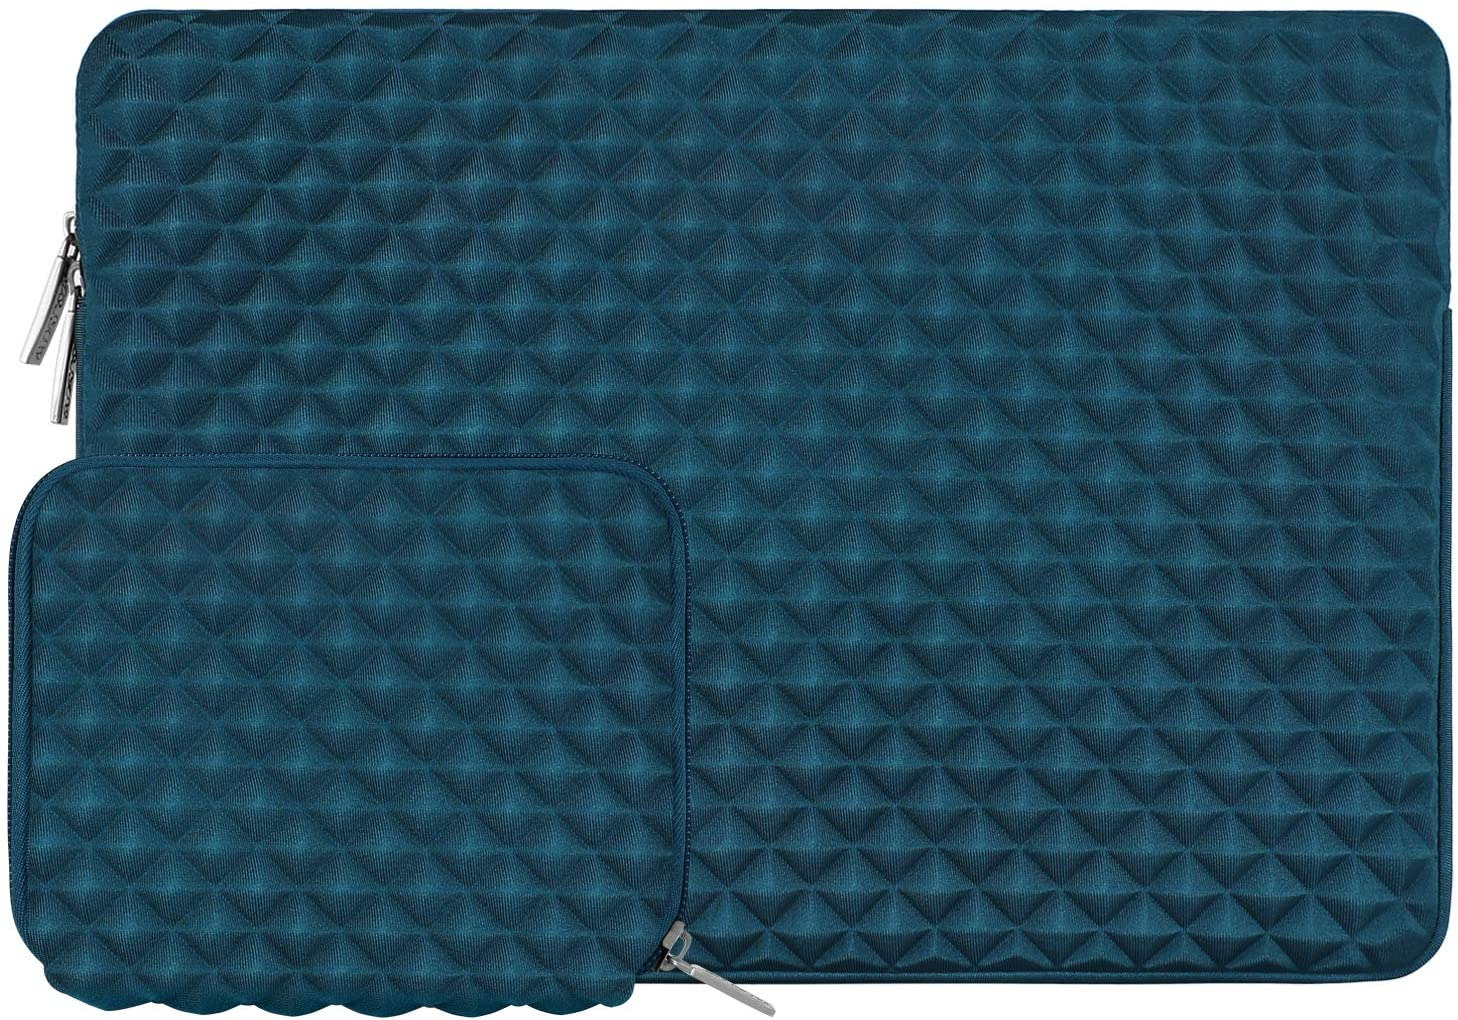 MOSISO Laptop Sleeve Compatible with 13-13.3 inch MacBook Pro, MacBook Air, Notebook Computer, Diamond Foam Neoprene Bag Cover with Small Case, Deep Teal